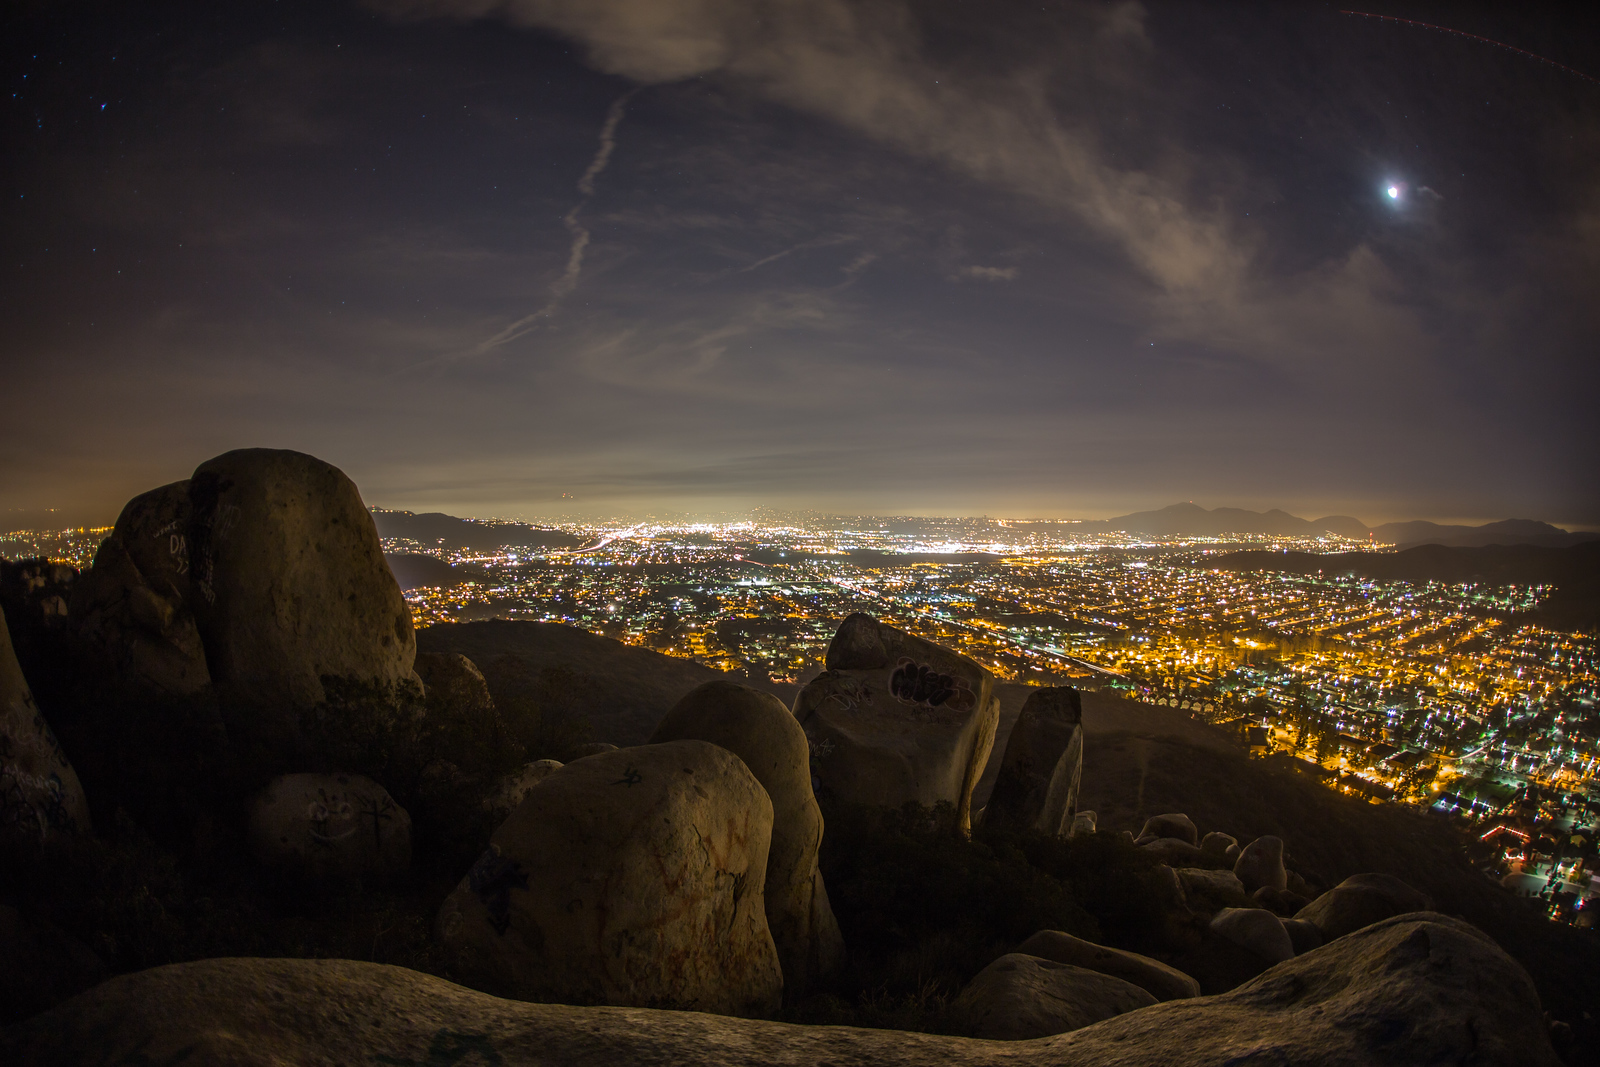 Rocks atop a mountain at night.